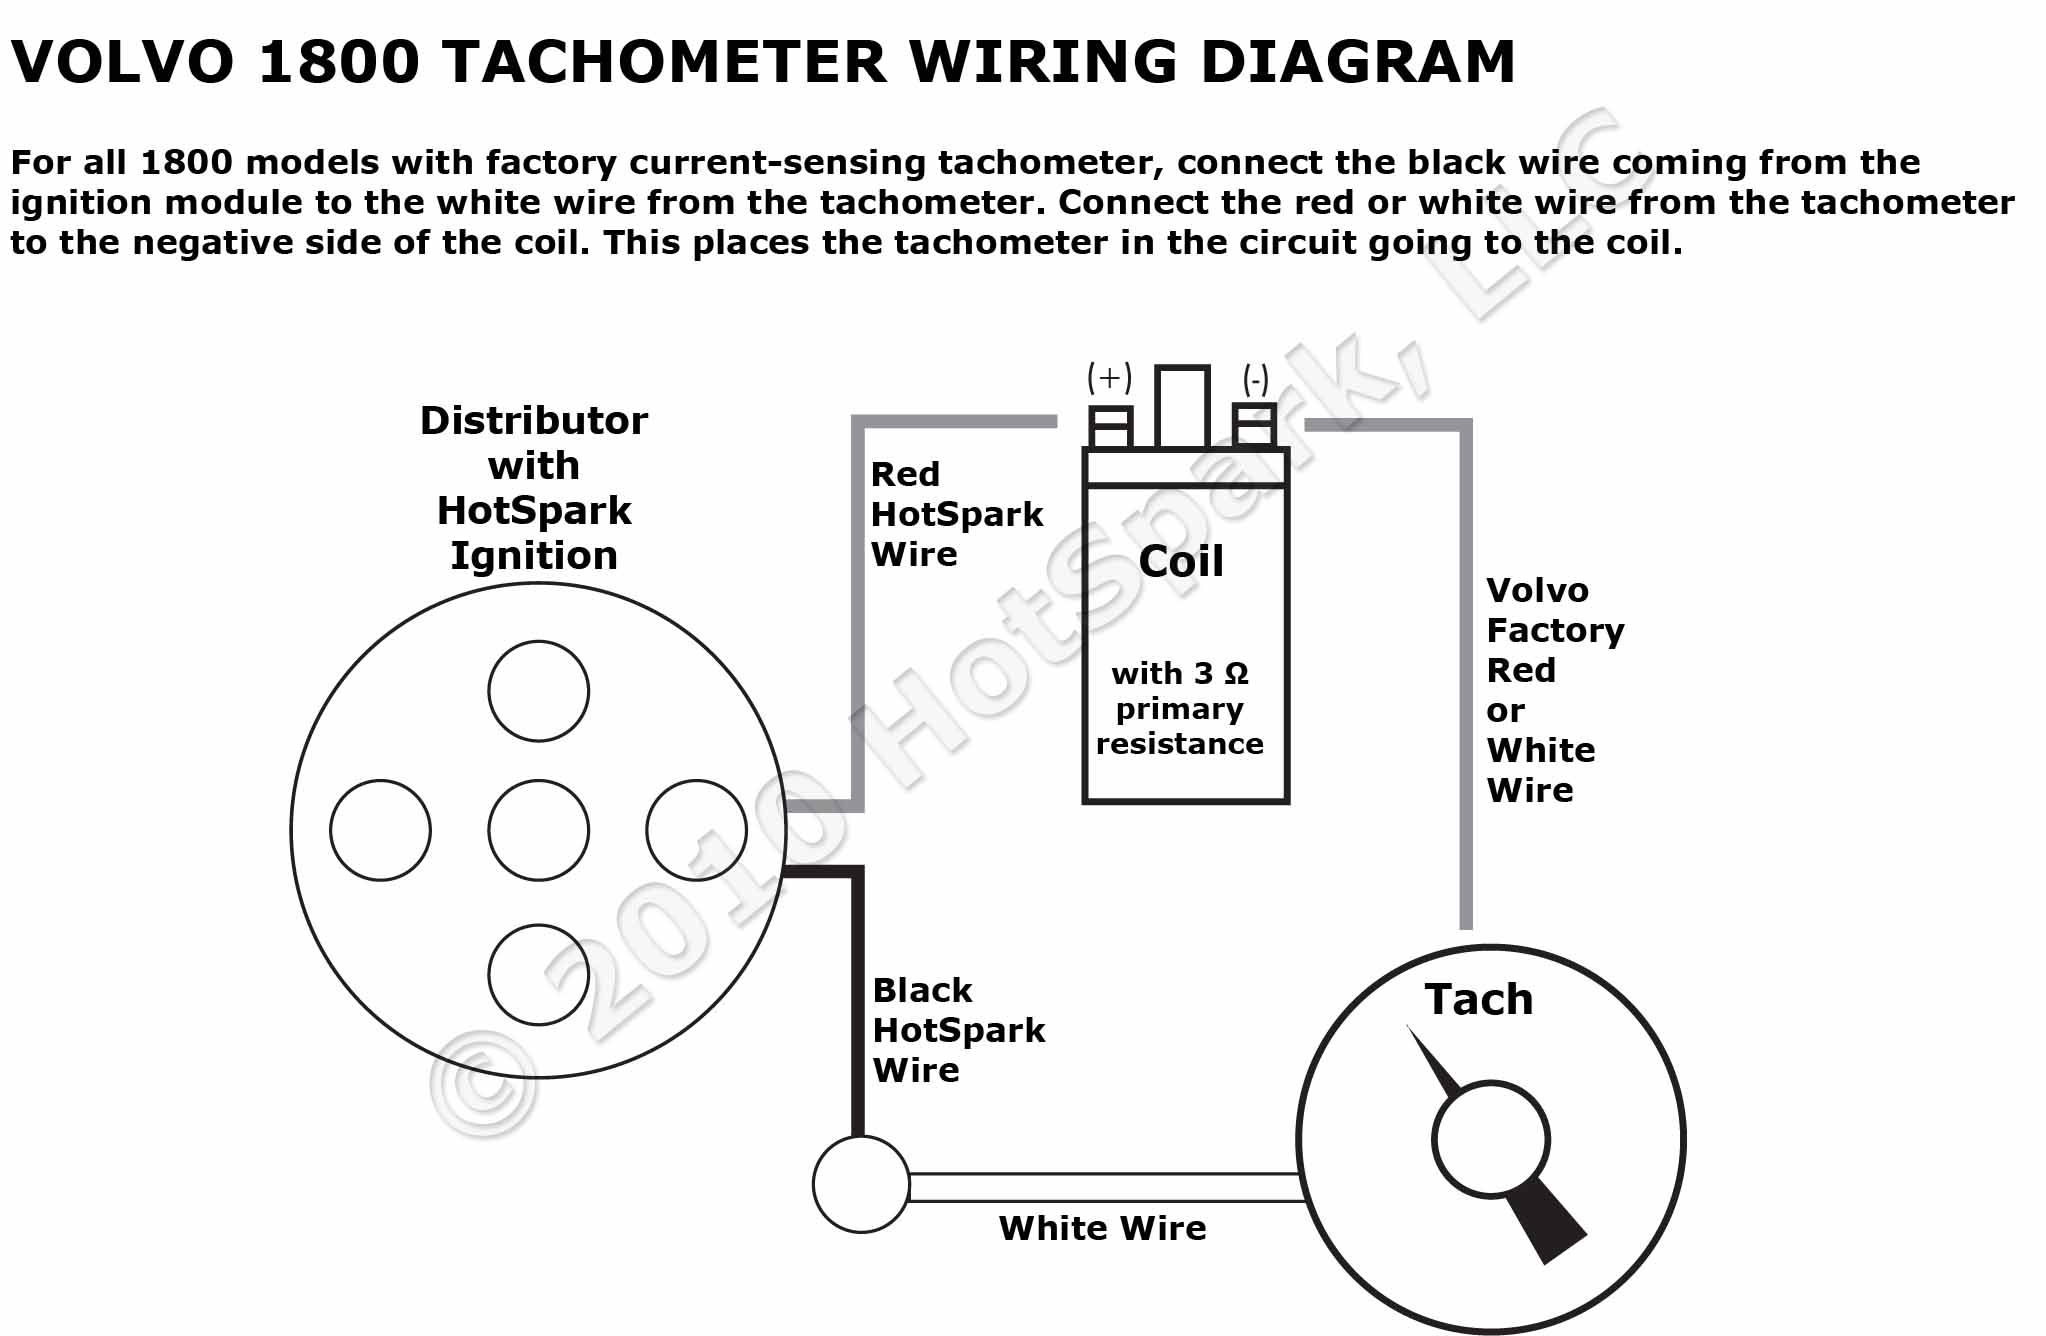 Volvo 1800 Tachometer Wiring Diagram With HotSpark Ignition